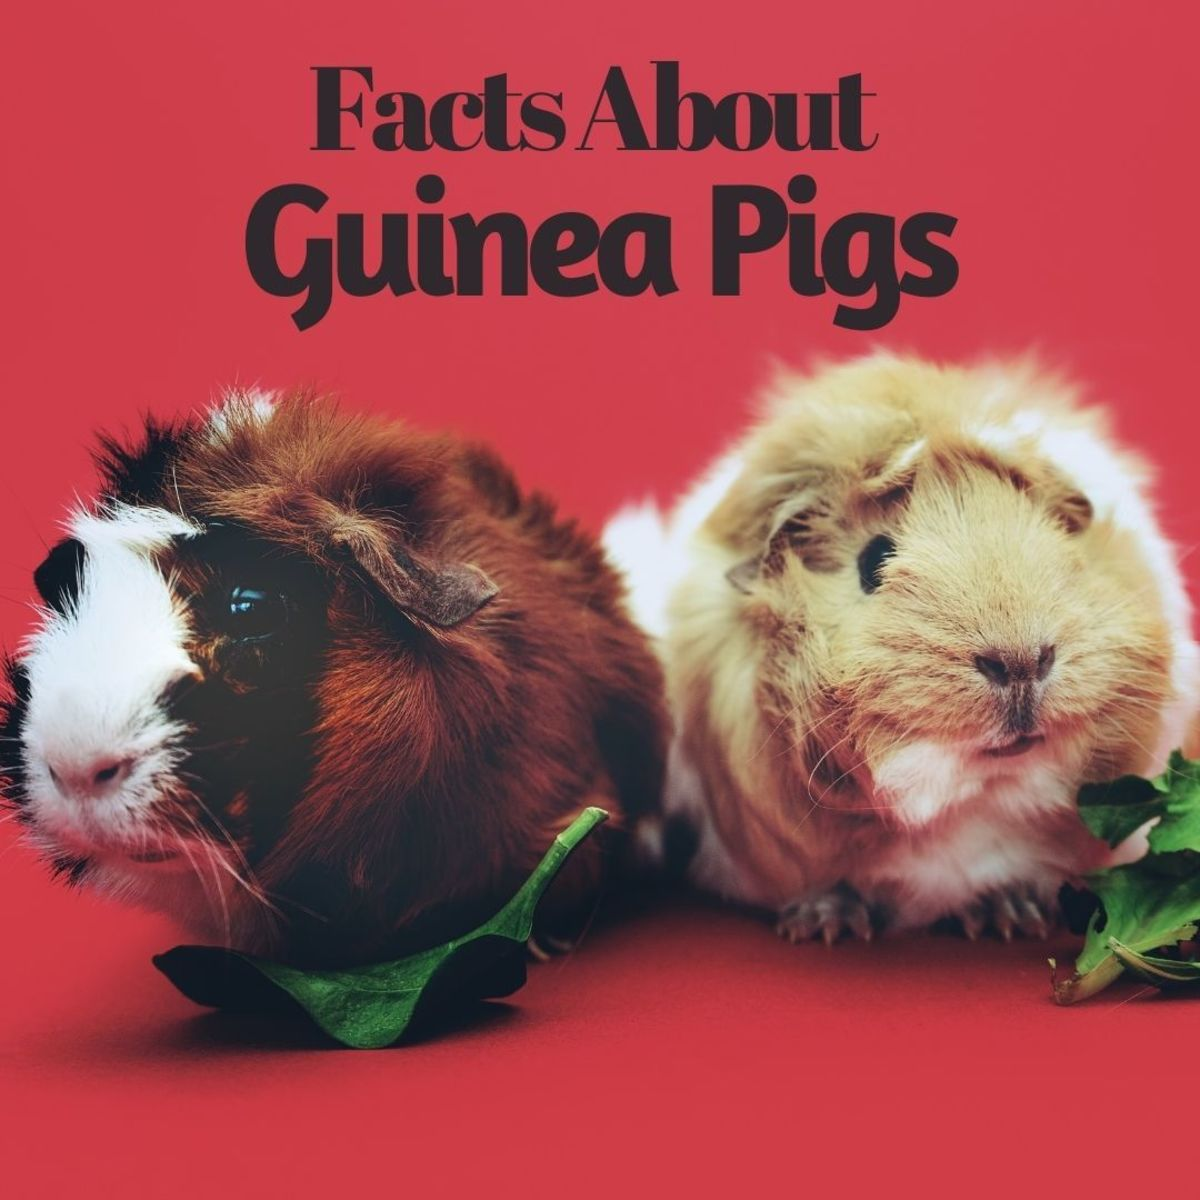 20 Facts About Guinea Pigs